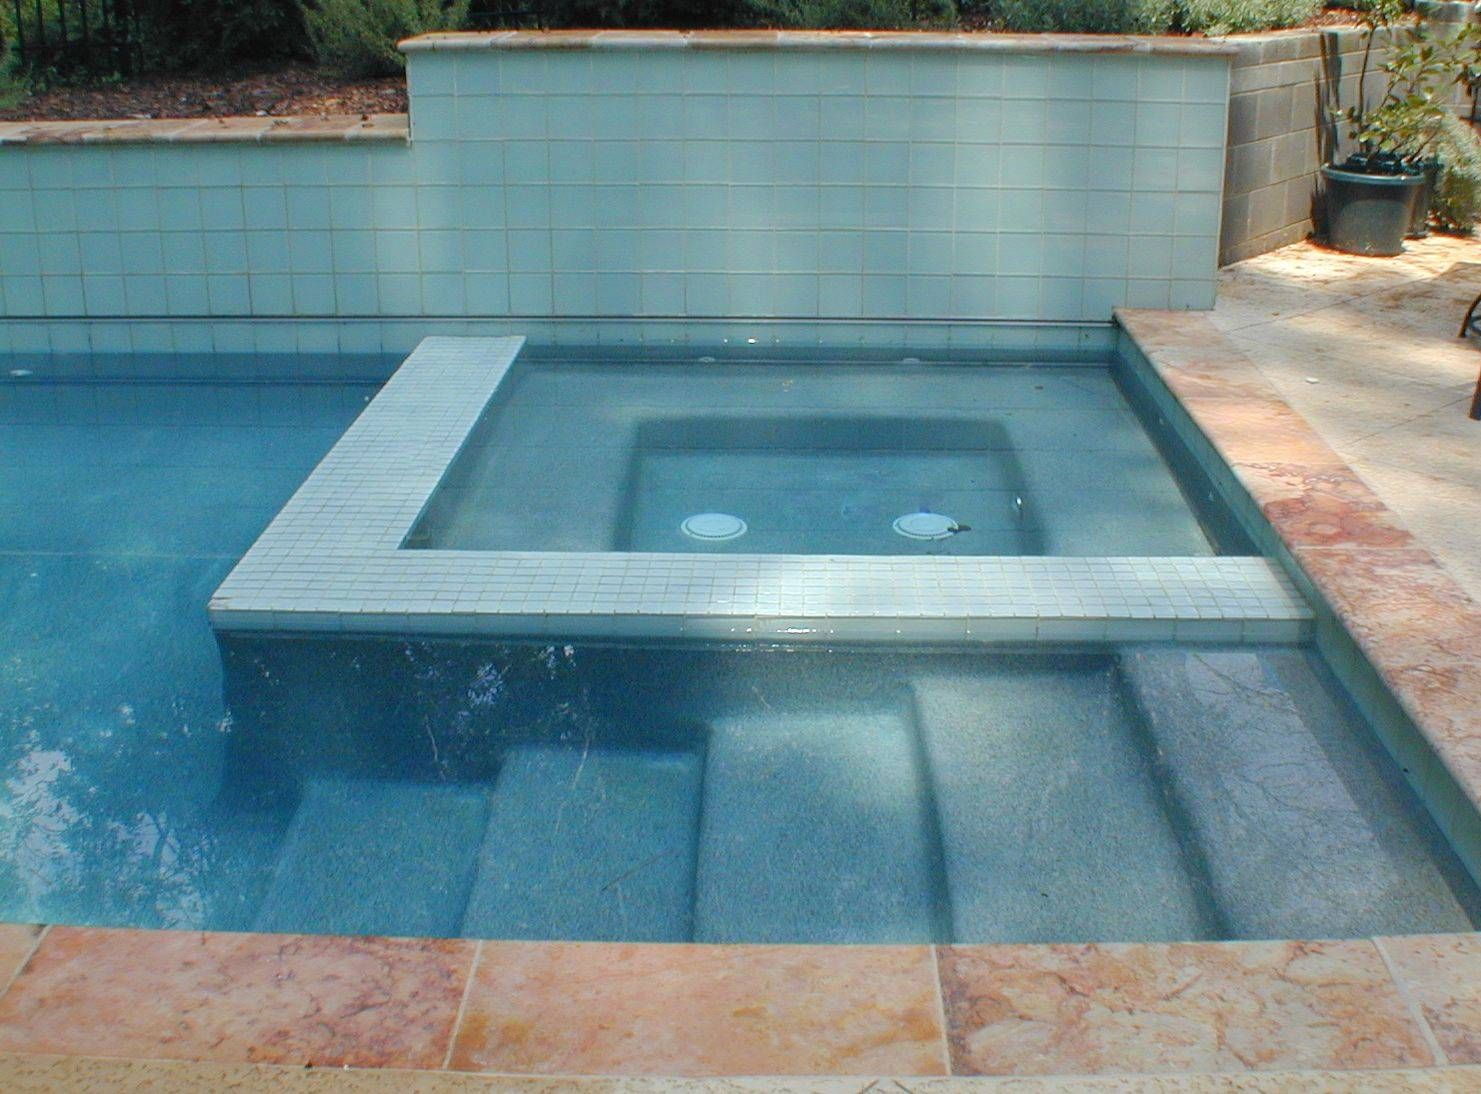 Pin modern pool design on pinterest - Swimming Pool Design Classic Traditional Modern Natural